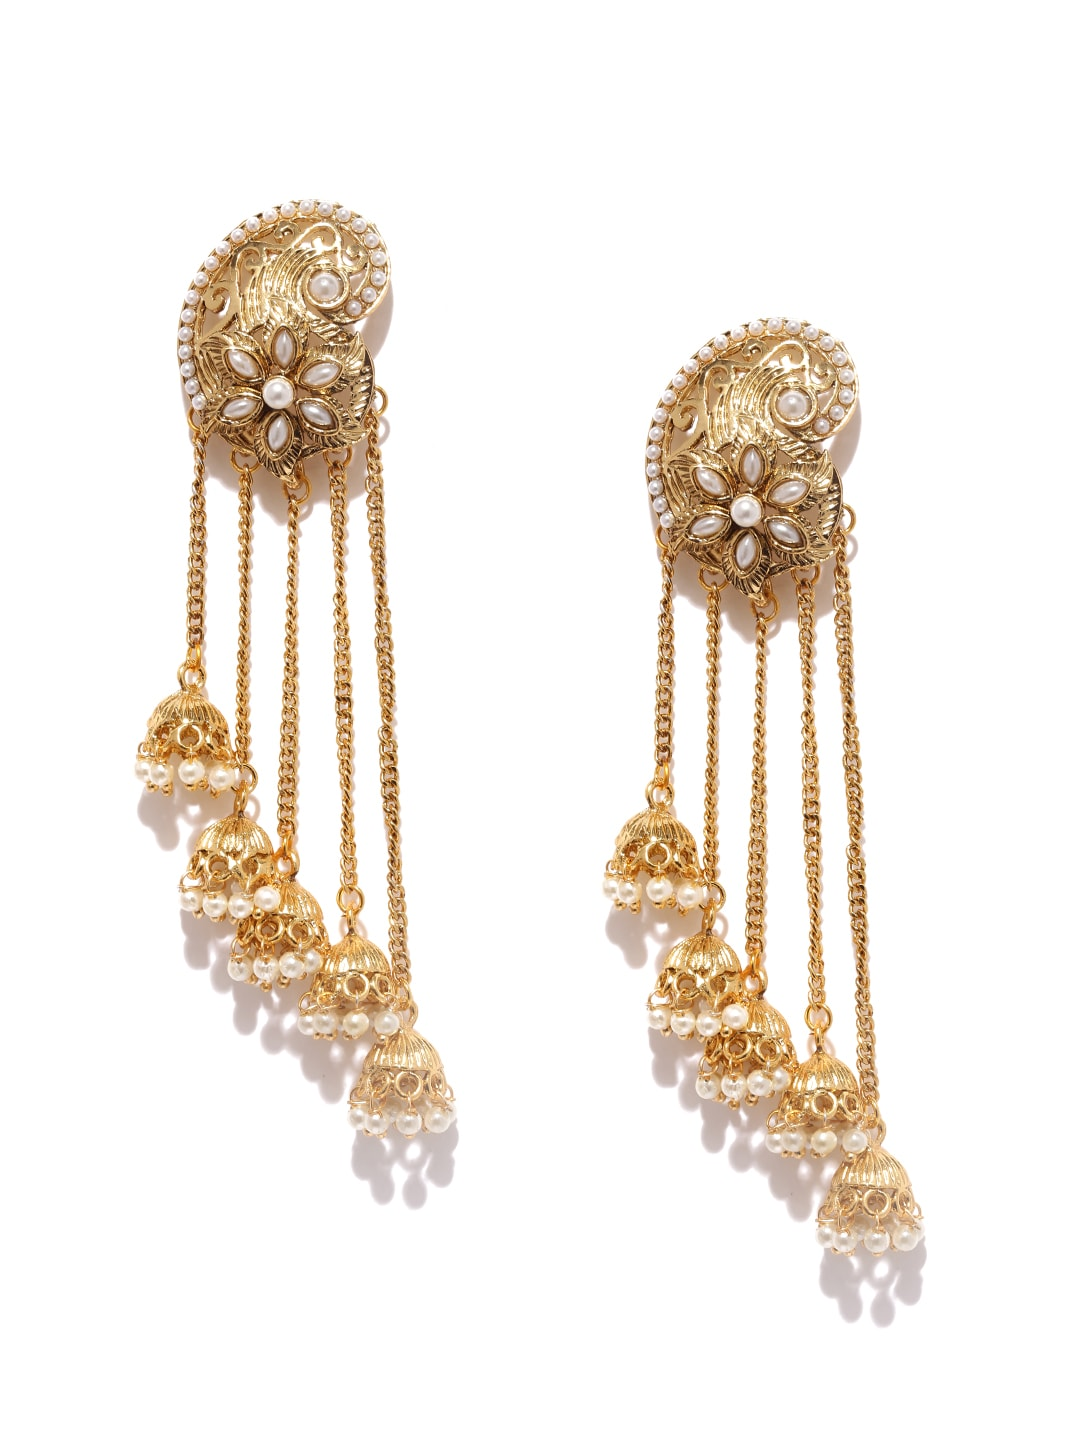 sukkhi earrings buy sukkhi earrings online in india